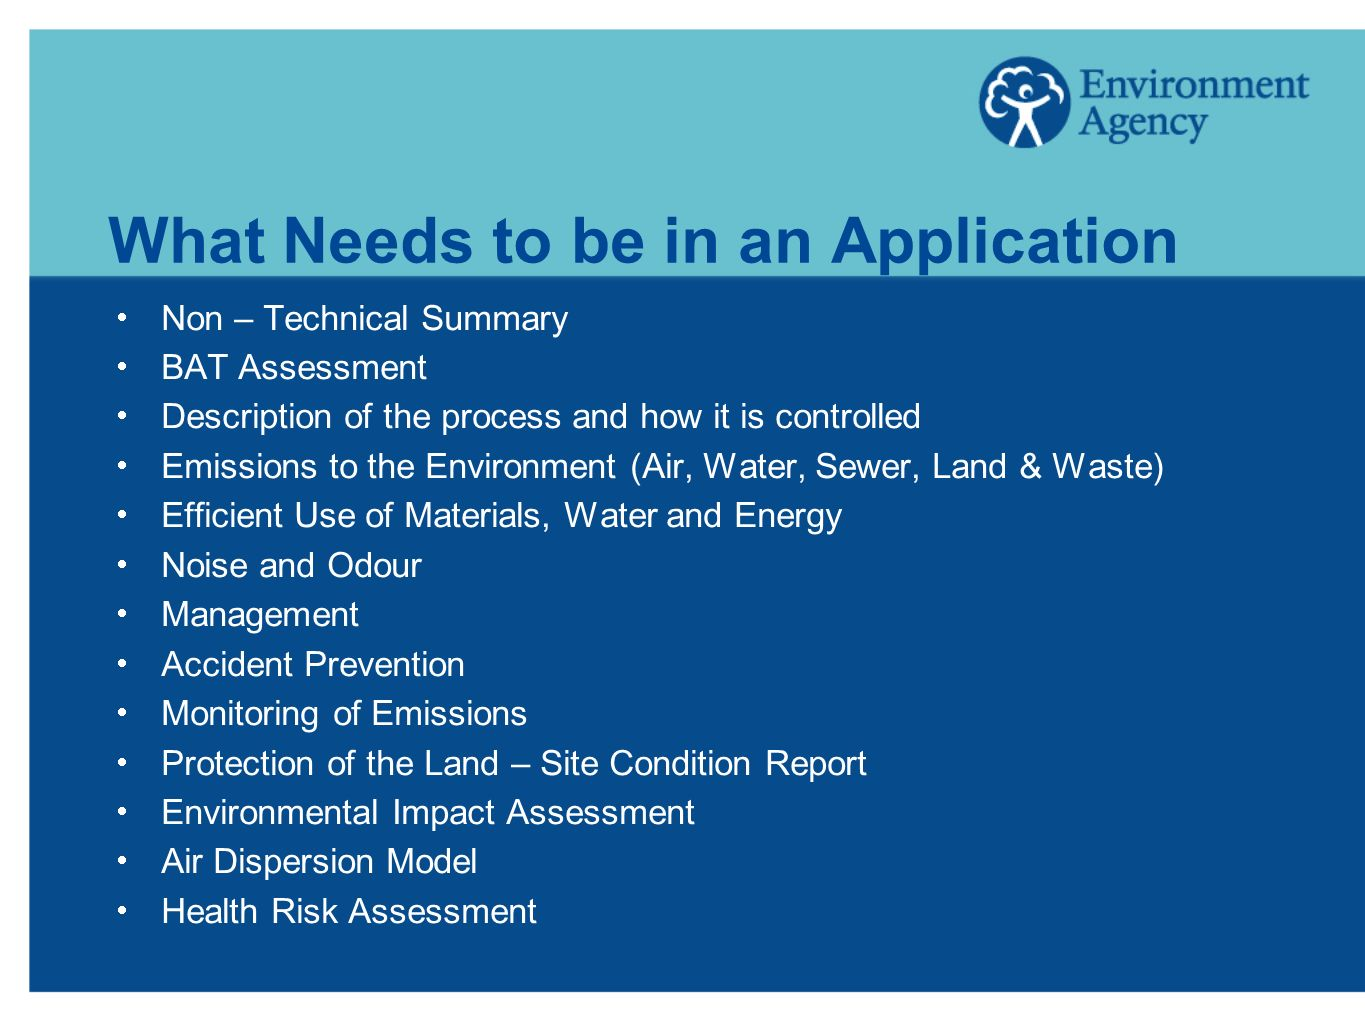 What Needs to be in an Application Non – Technical Summary BAT Assessment Description of the process and how it is controlled Emissions to the Environment (Air, Water, Sewer, Land & Waste) Efficient Use of Materials, Water and Energy Noise and Odour Management Accident Prevention Monitoring of Emissions Protection of the Land – Site Condition Report Environmental Impact Assessment Air Dispersion Model Health Risk Assessment